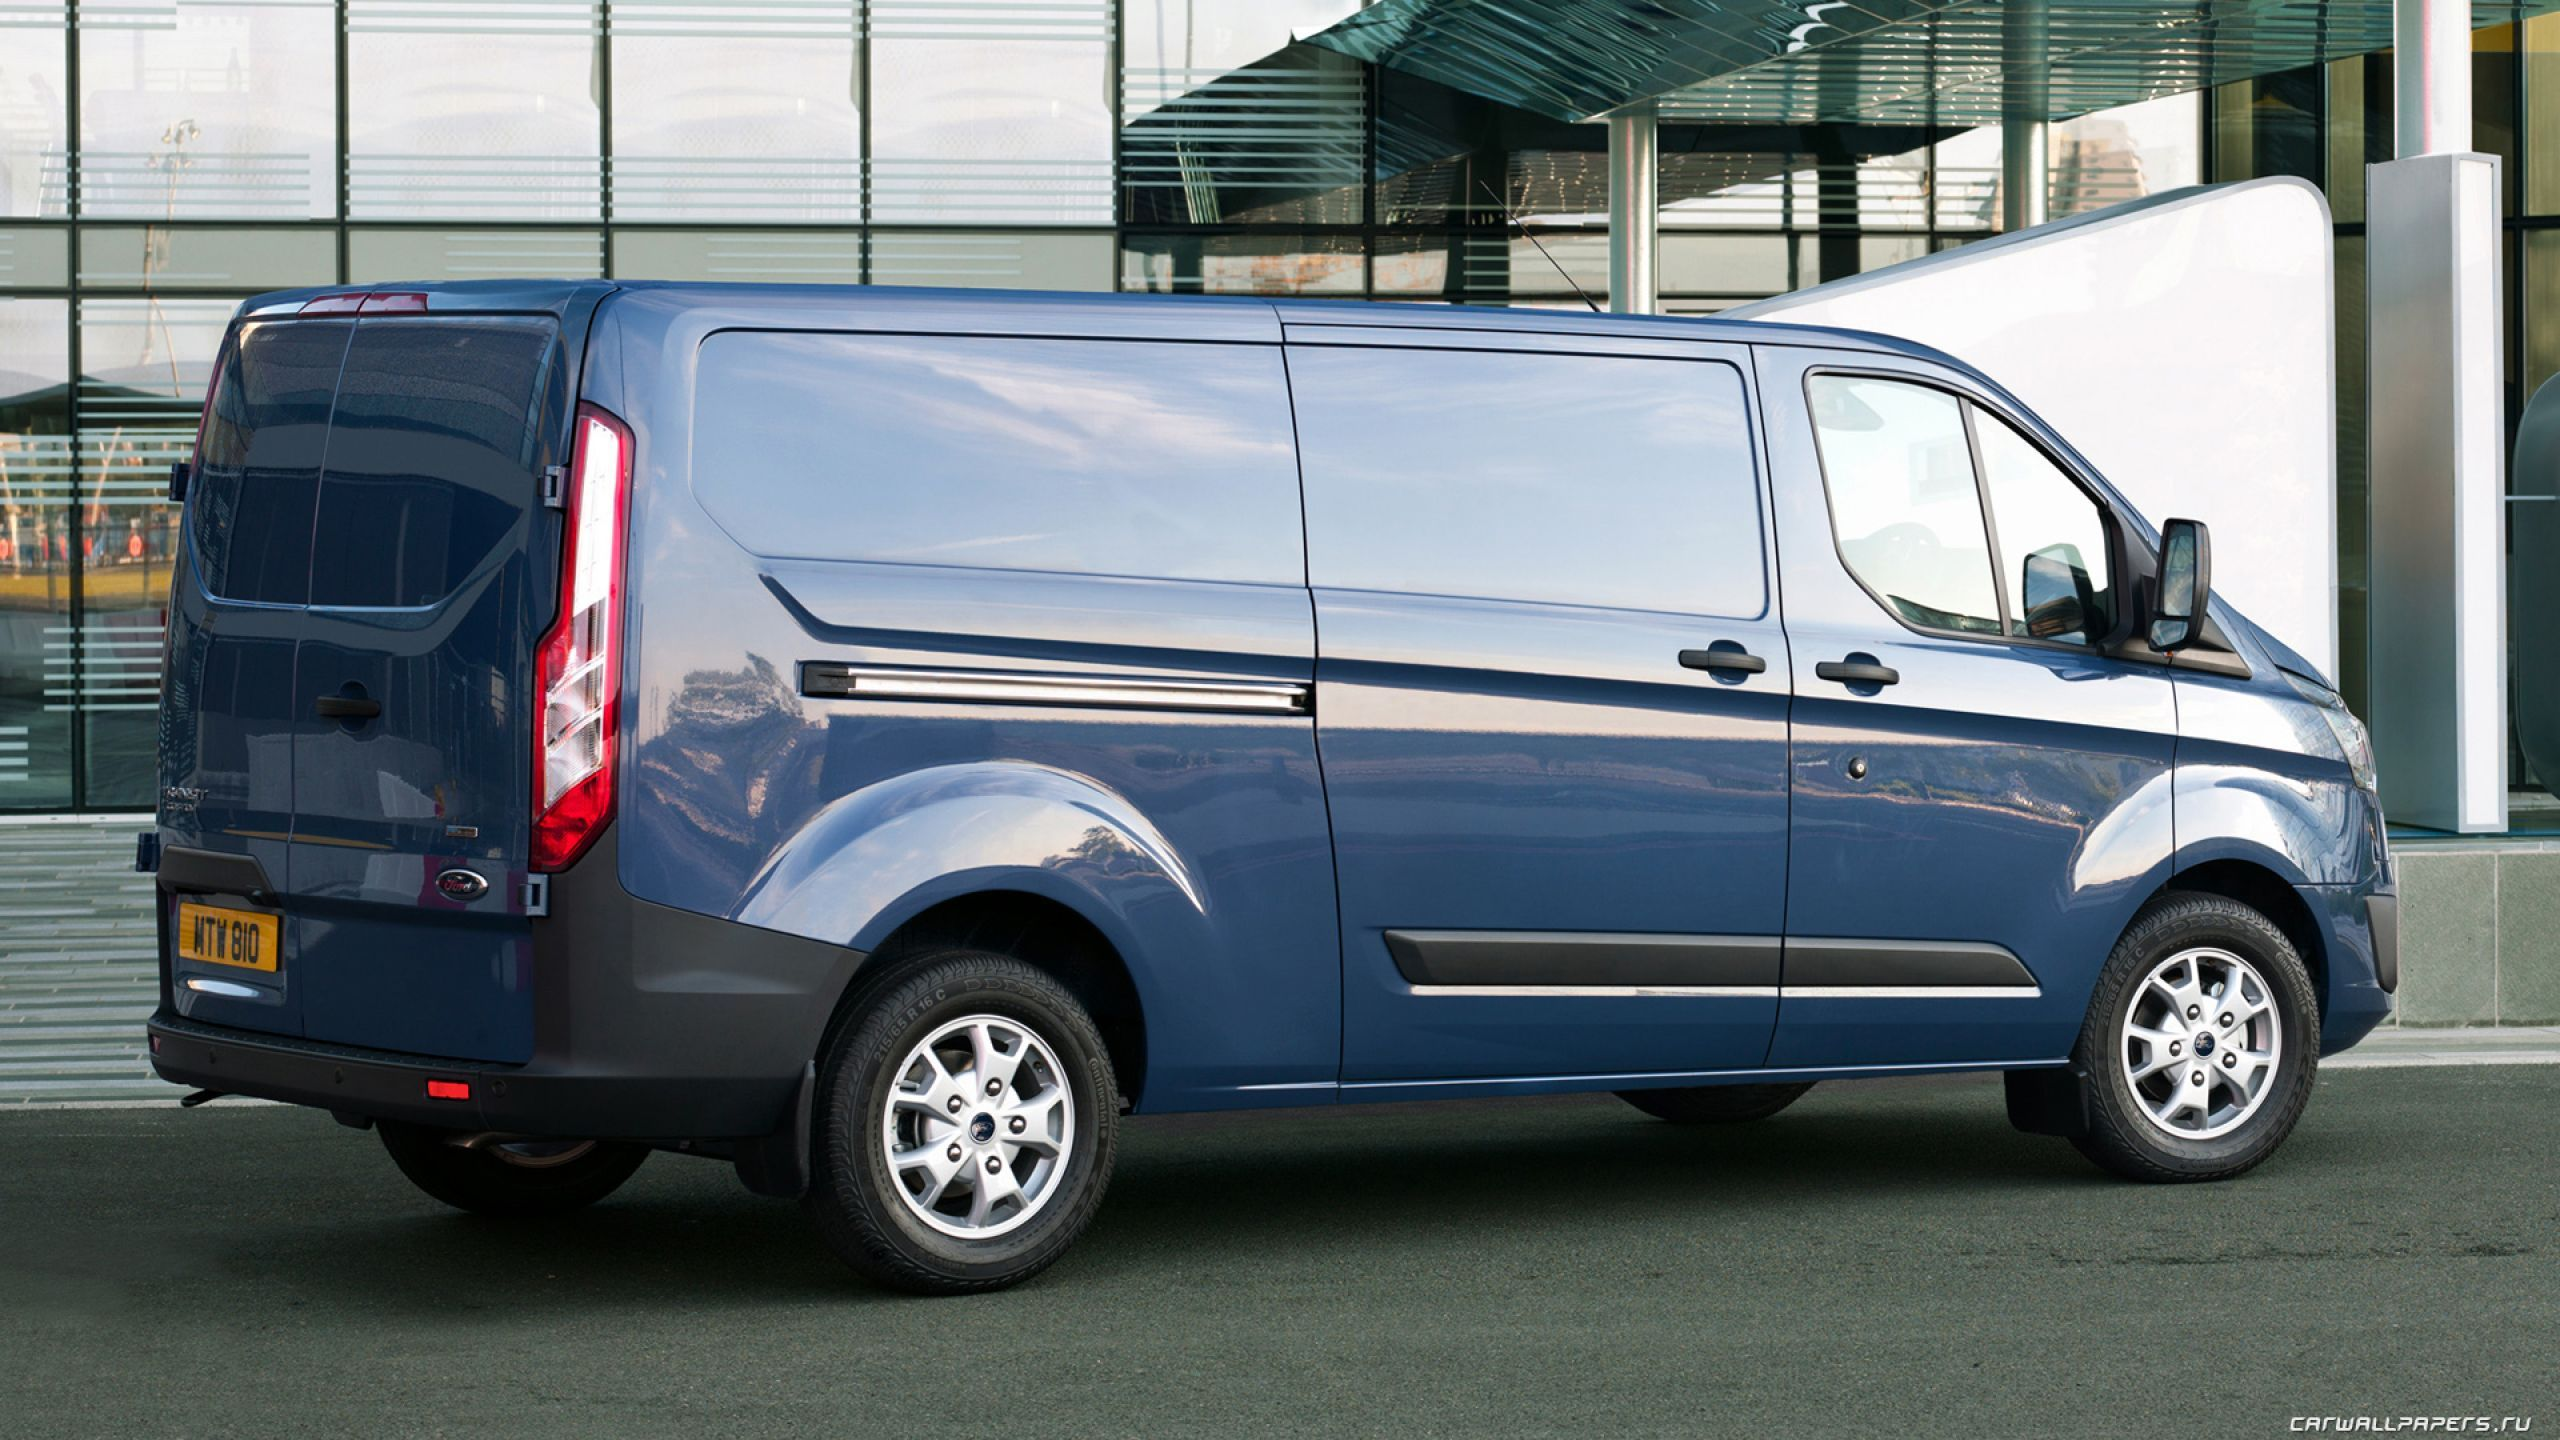 2 0 Ford Transit Engine Ford Transit Engines For Sale Ford